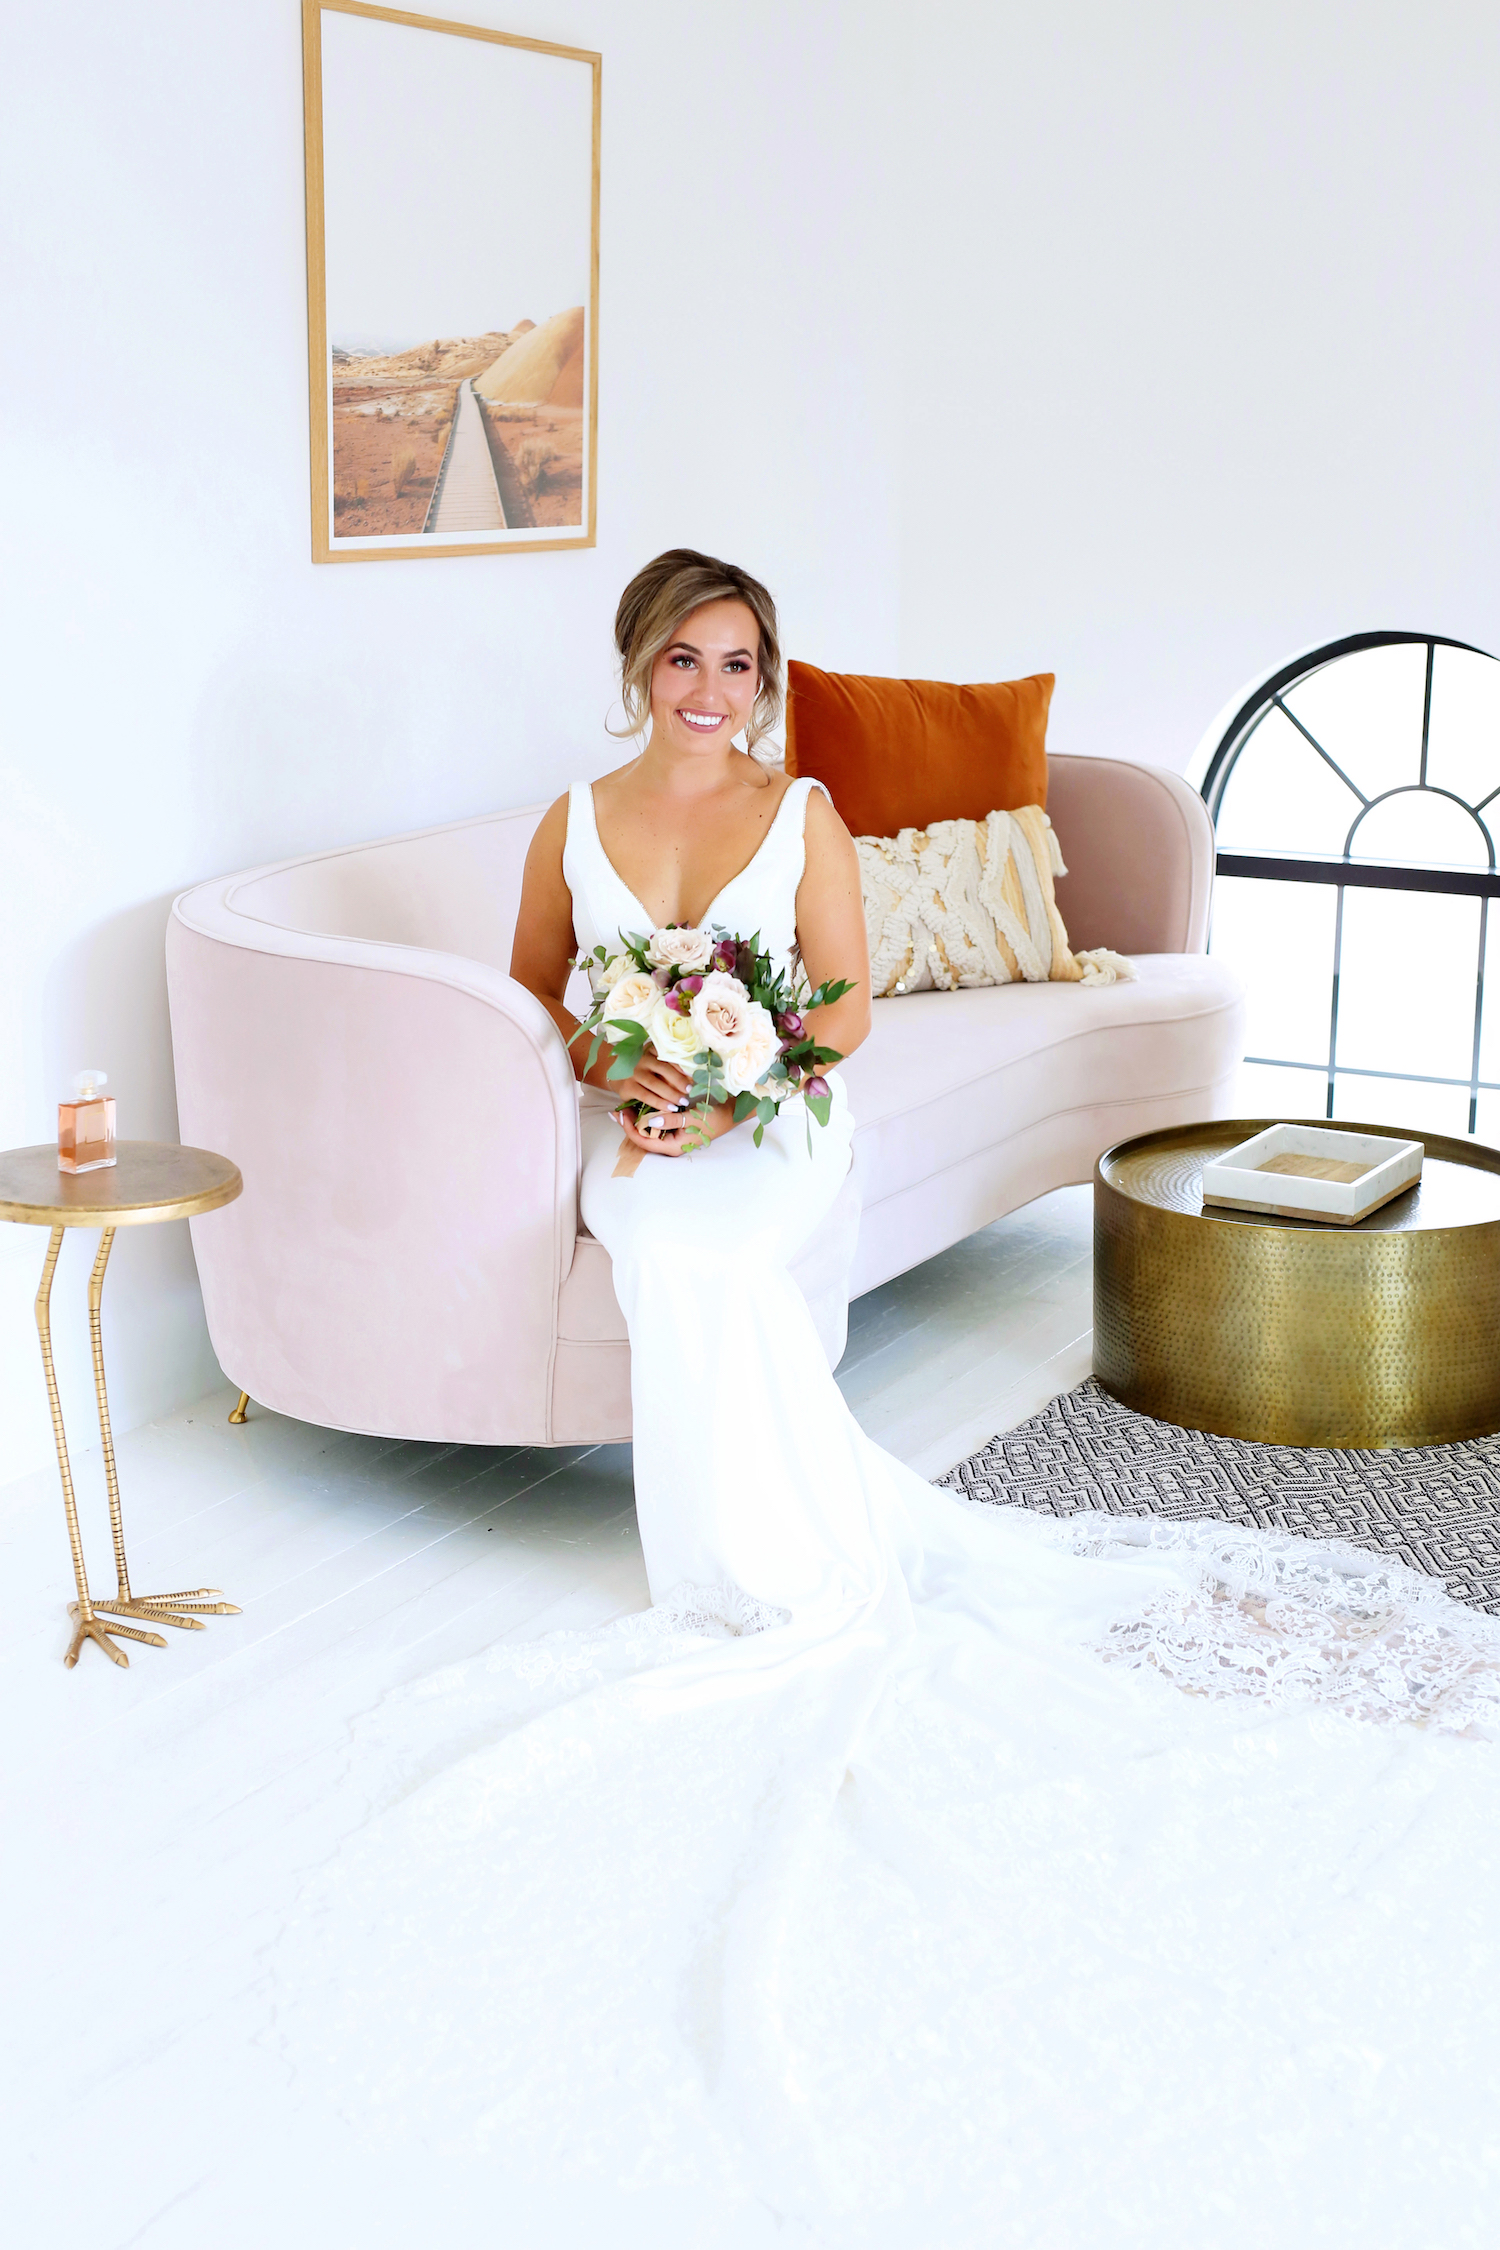 Bride smiling after getting ready